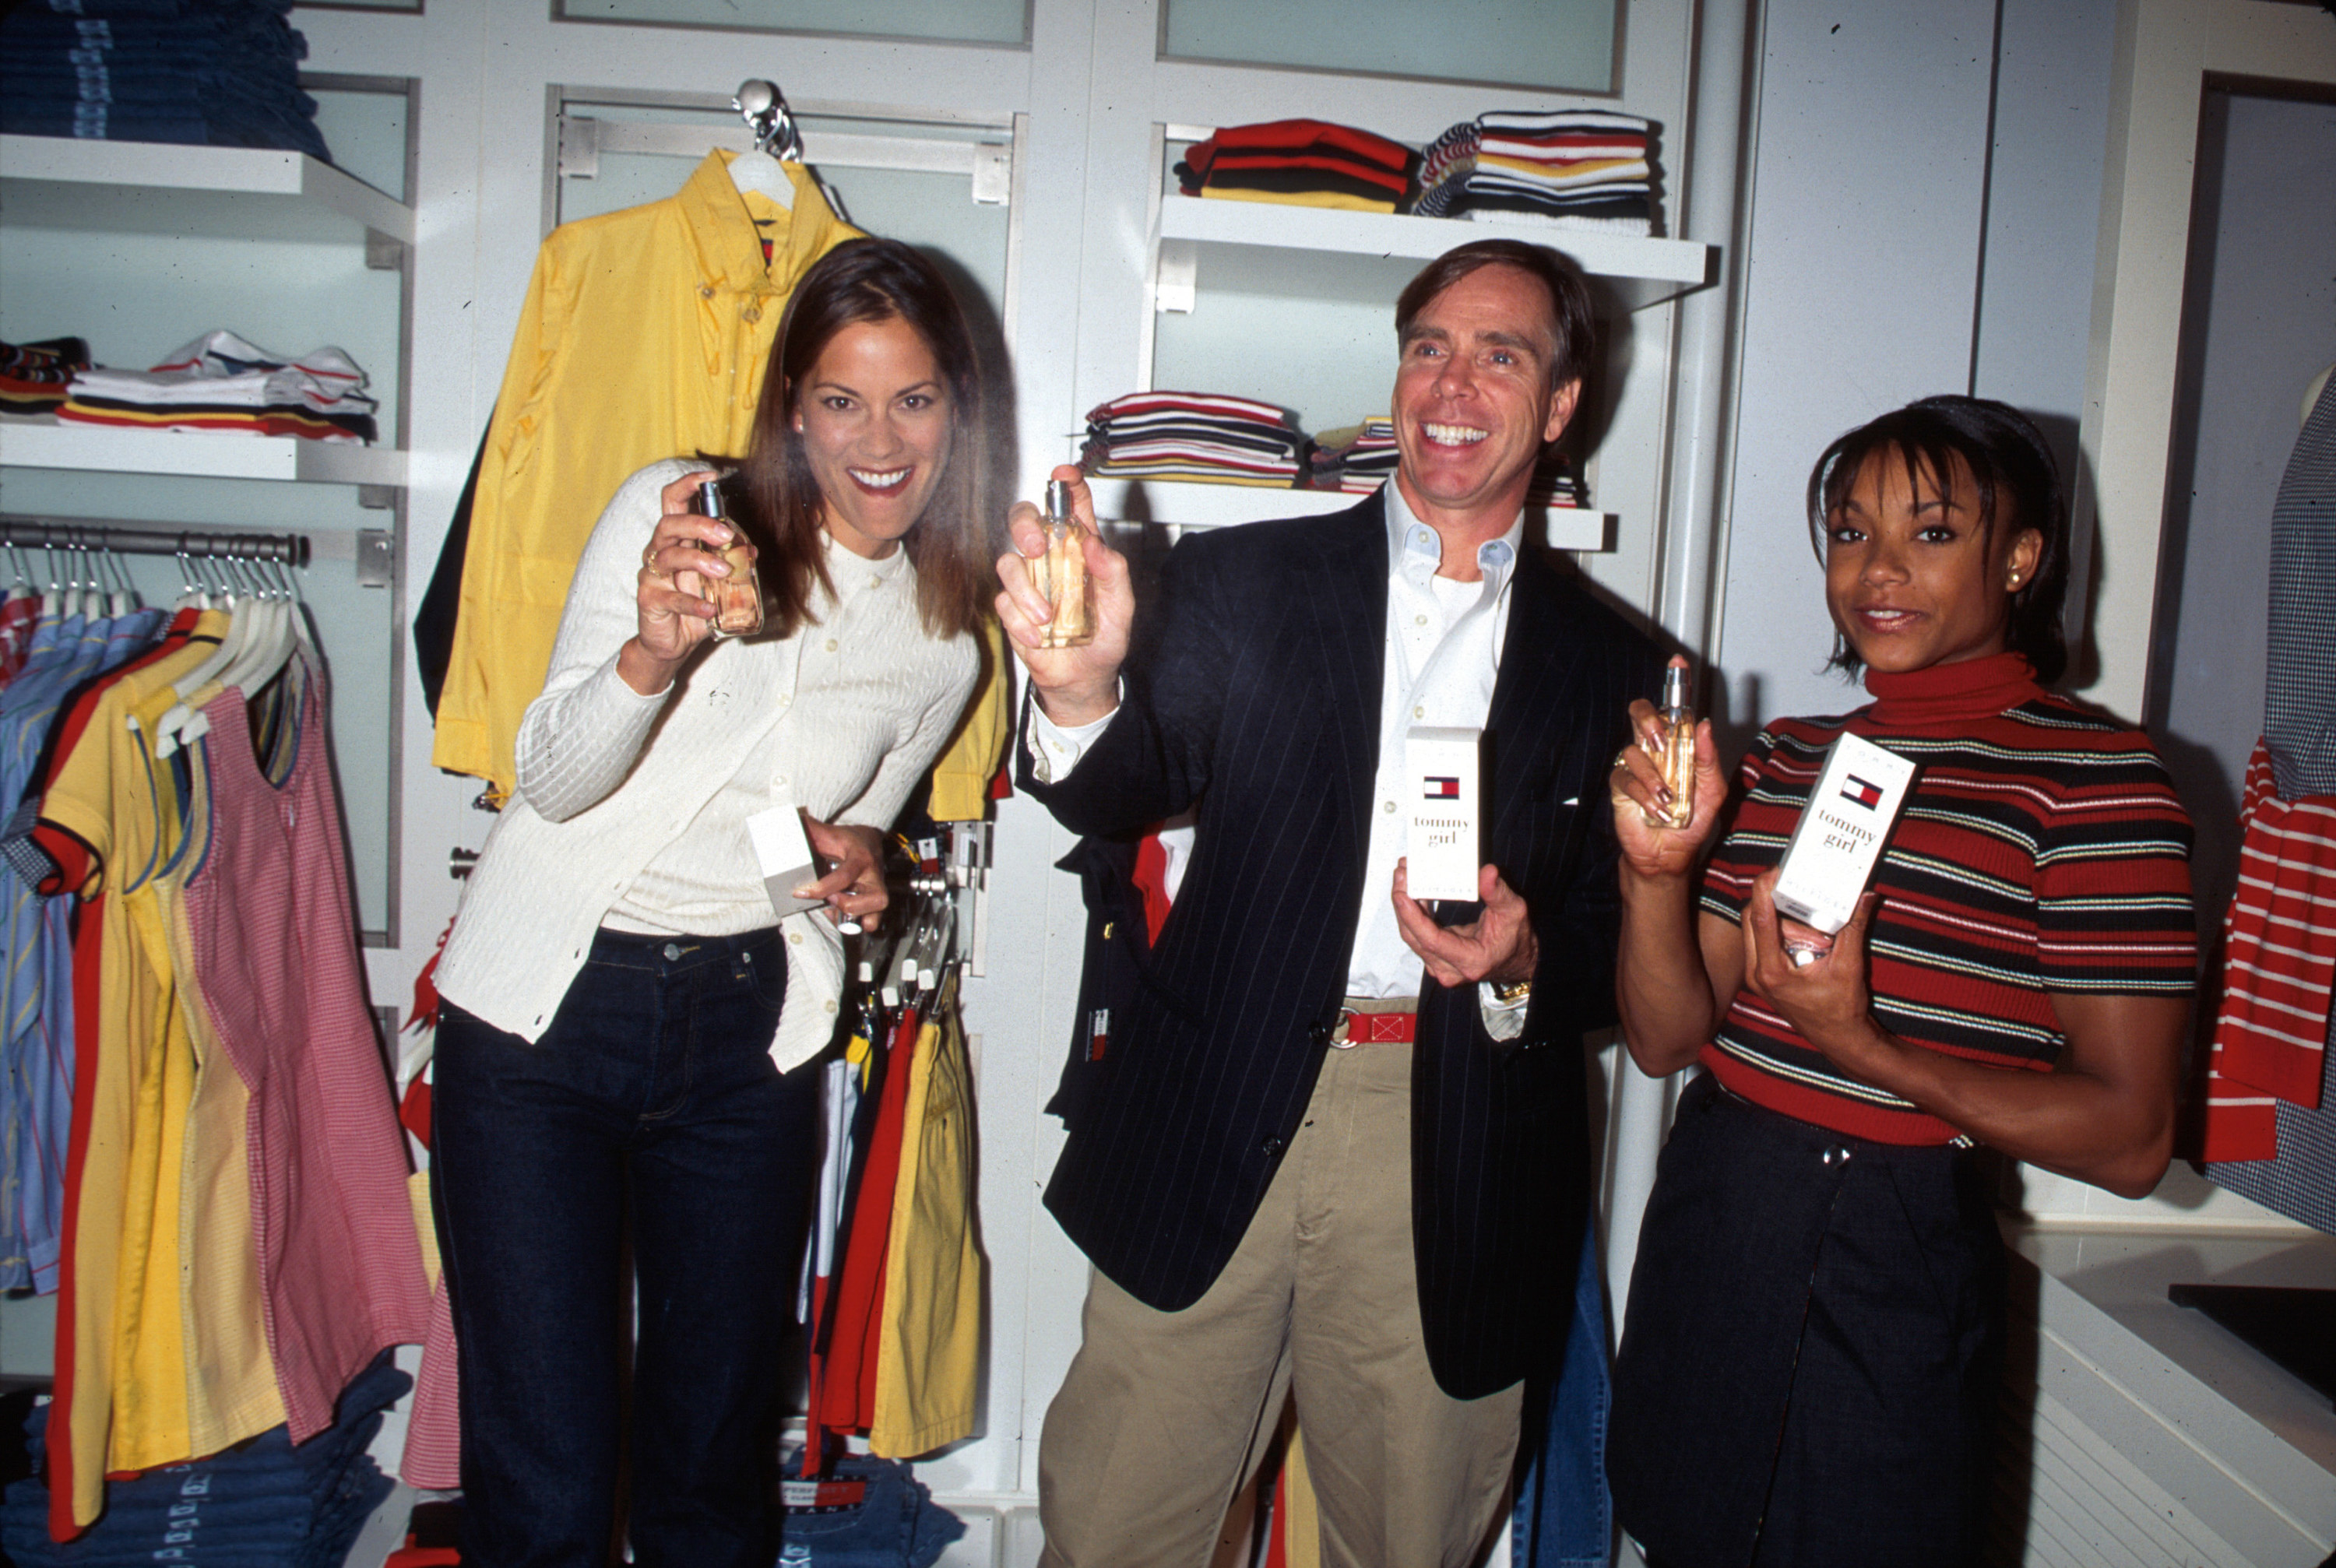 Tommy Hilfiger and two models spraying Tommy Girl perfume inside a store